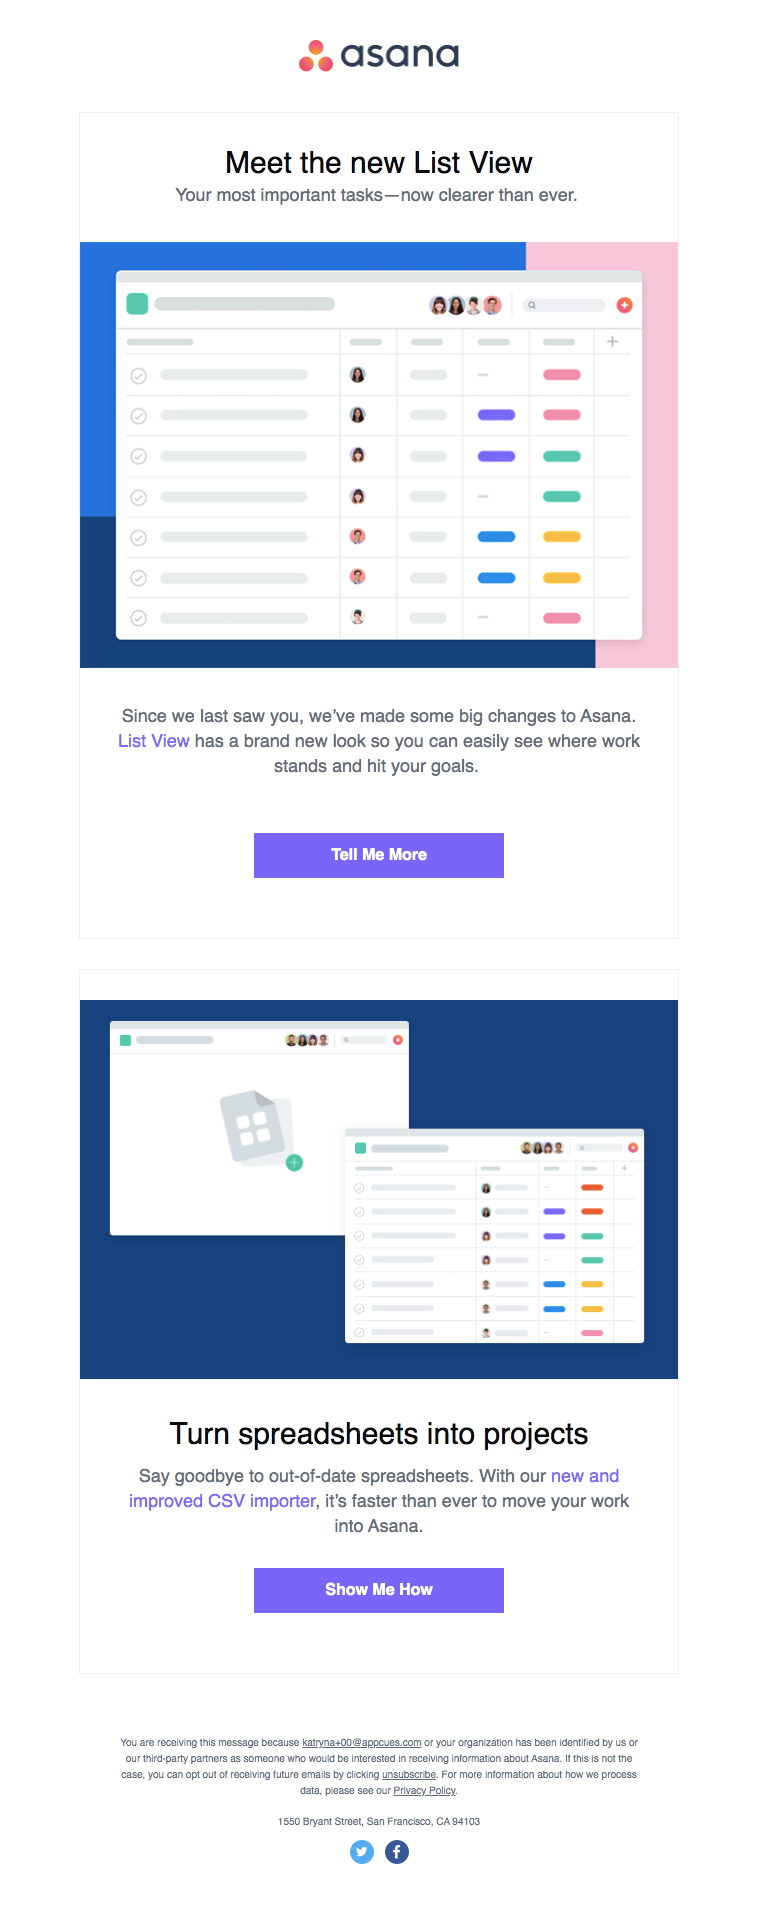 asana new feature mini product launch marketing email